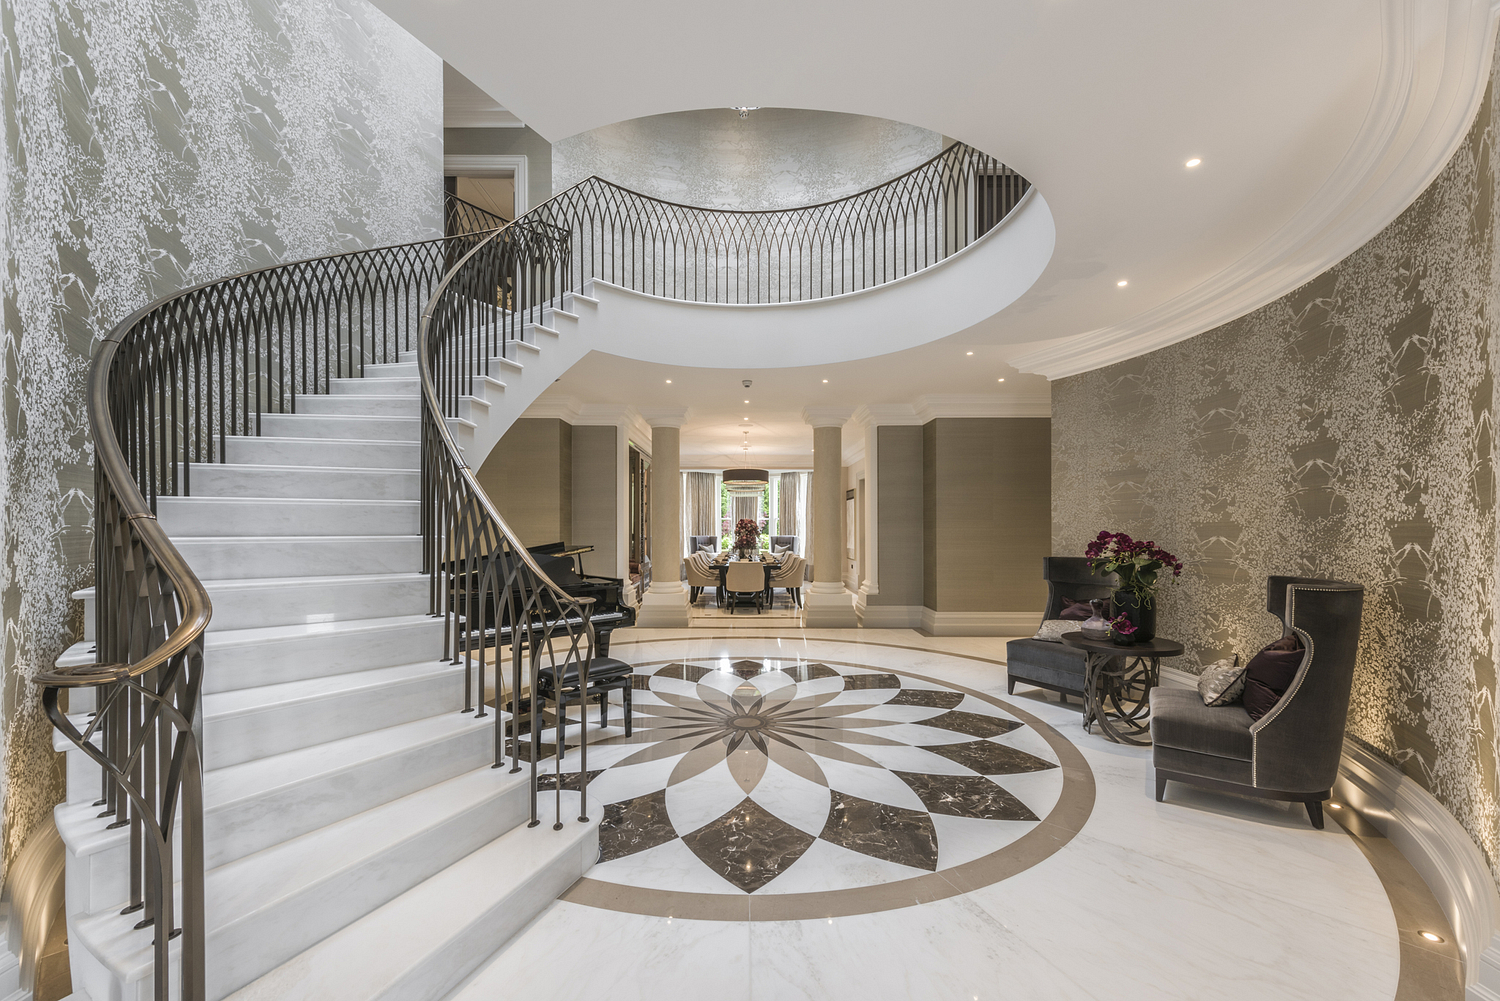 Grand entrance hall with staircase, Surrey house